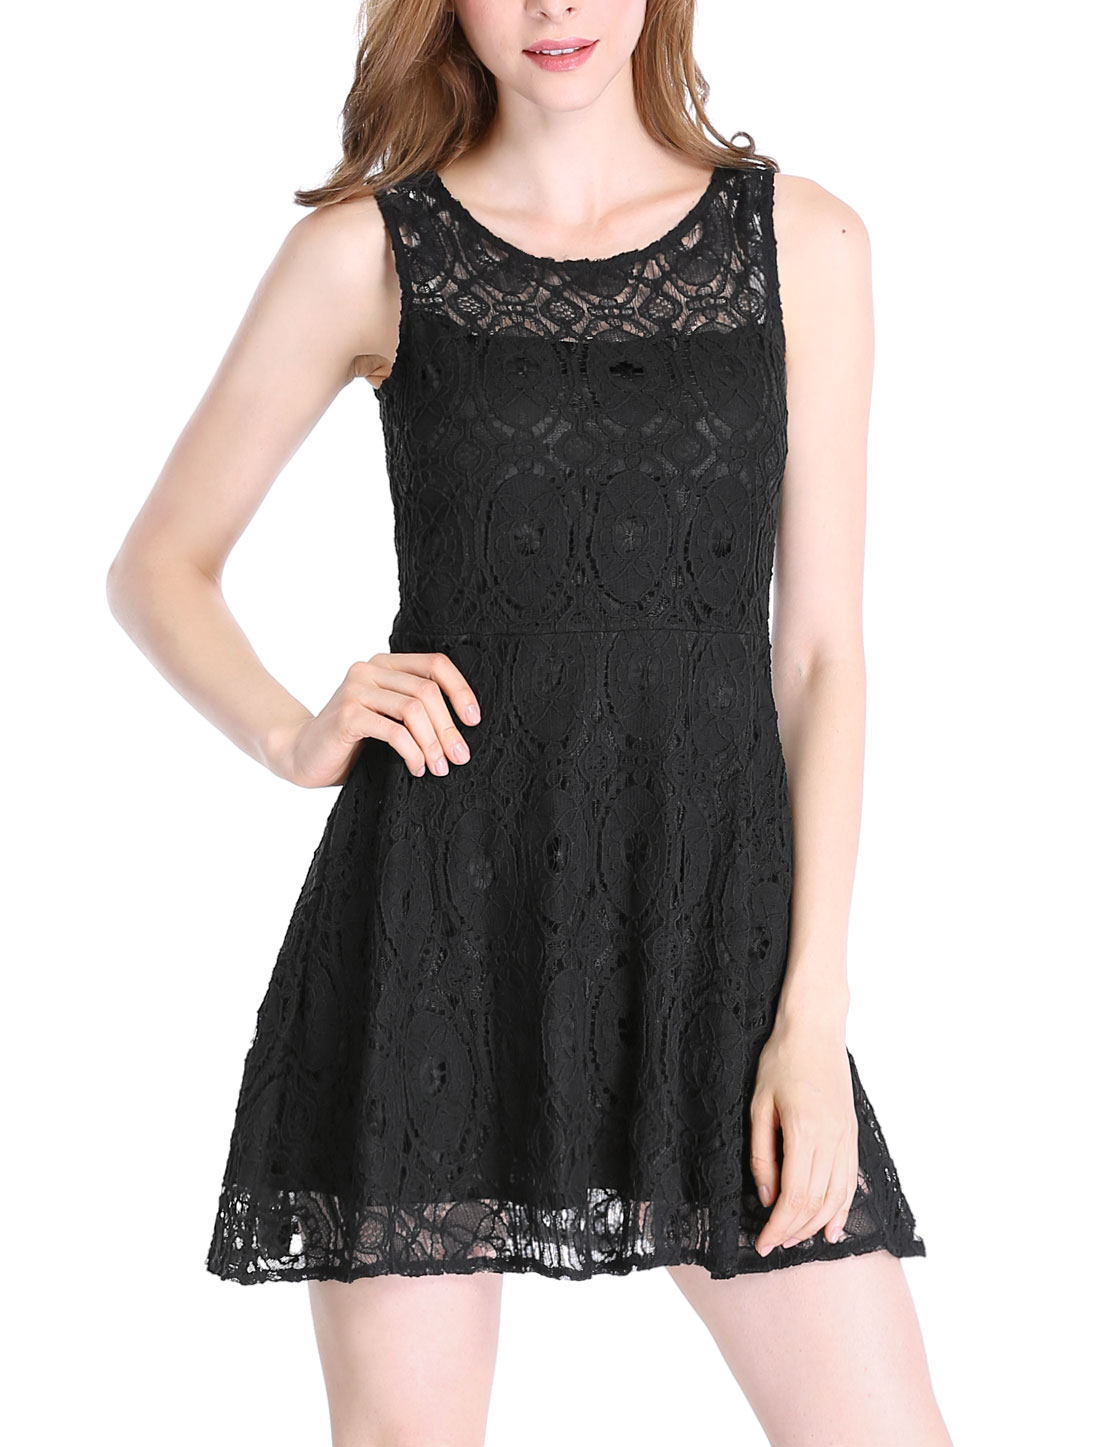 Women Sleeveless Bateau Neck Floral Lace Flare Dress Black XL